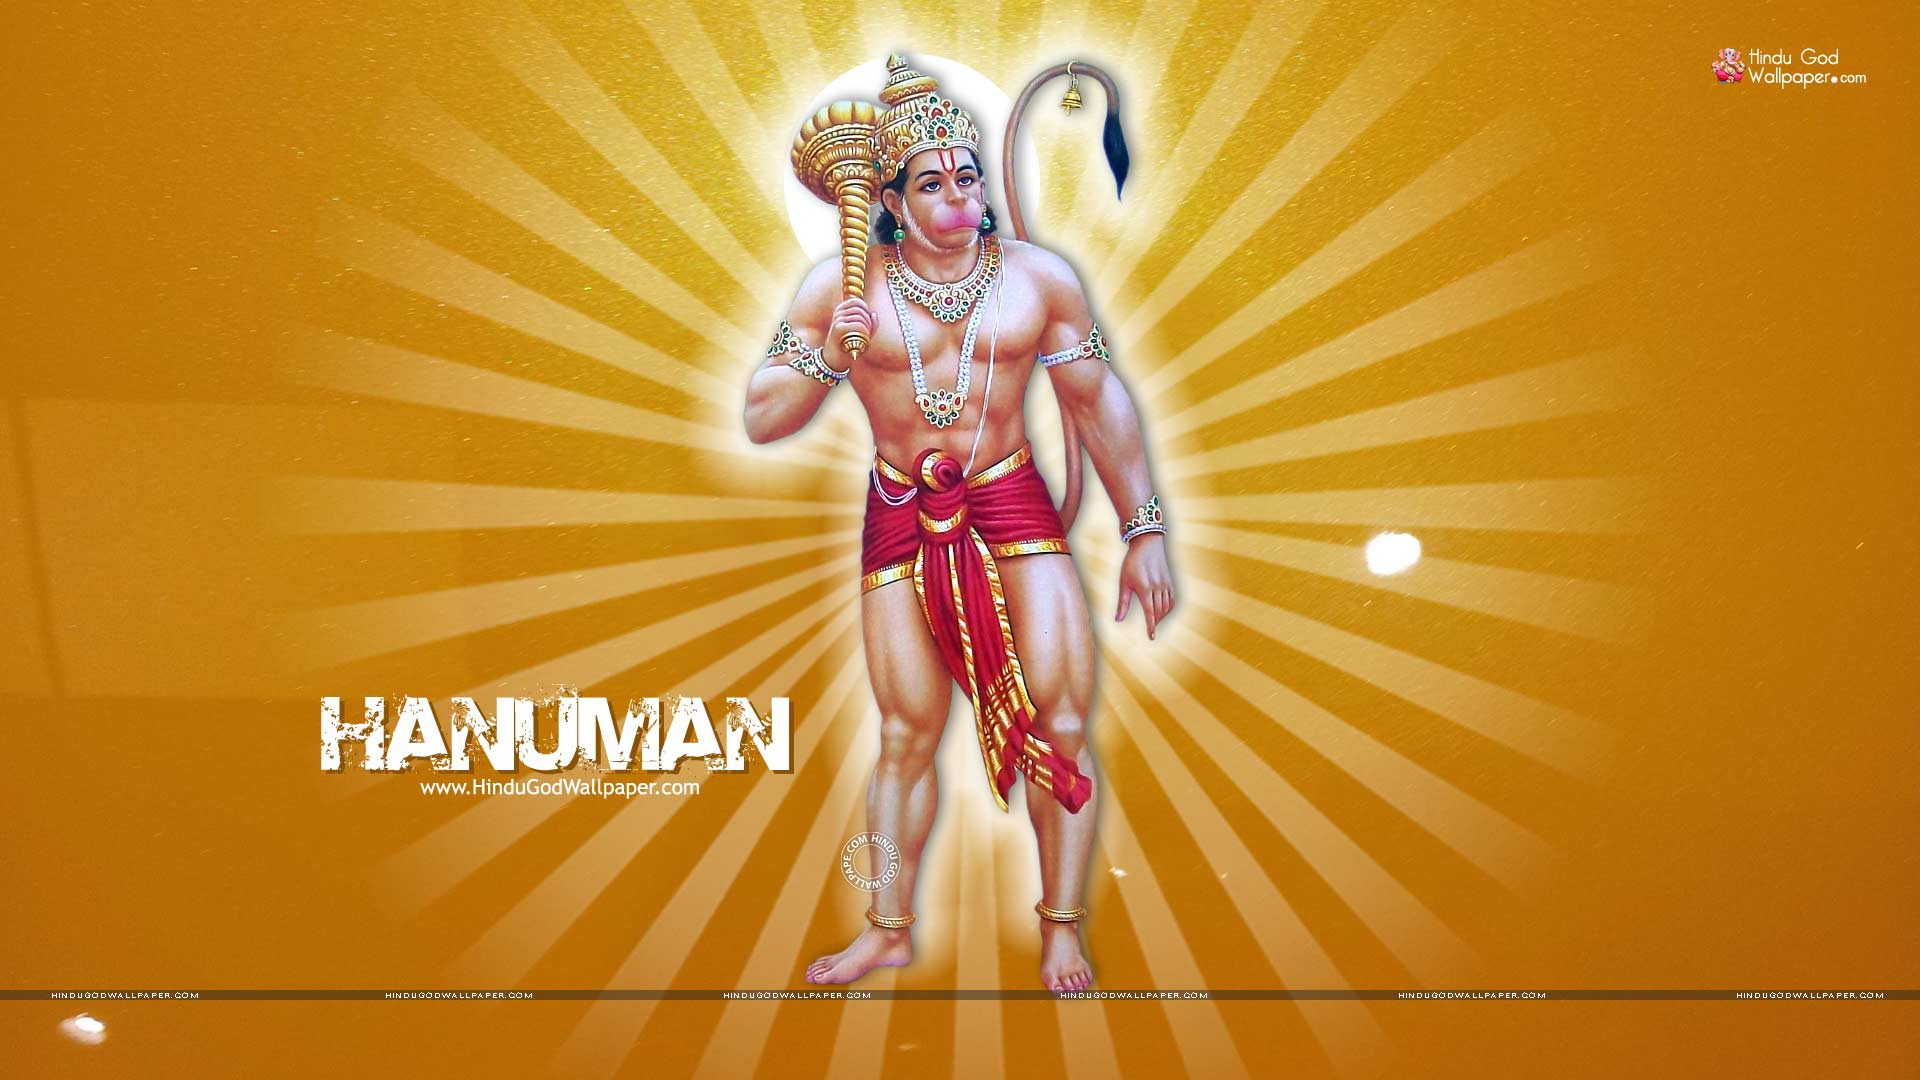 1080p Hanuman Bodybuilding Hd Wallpaper Full Size Download